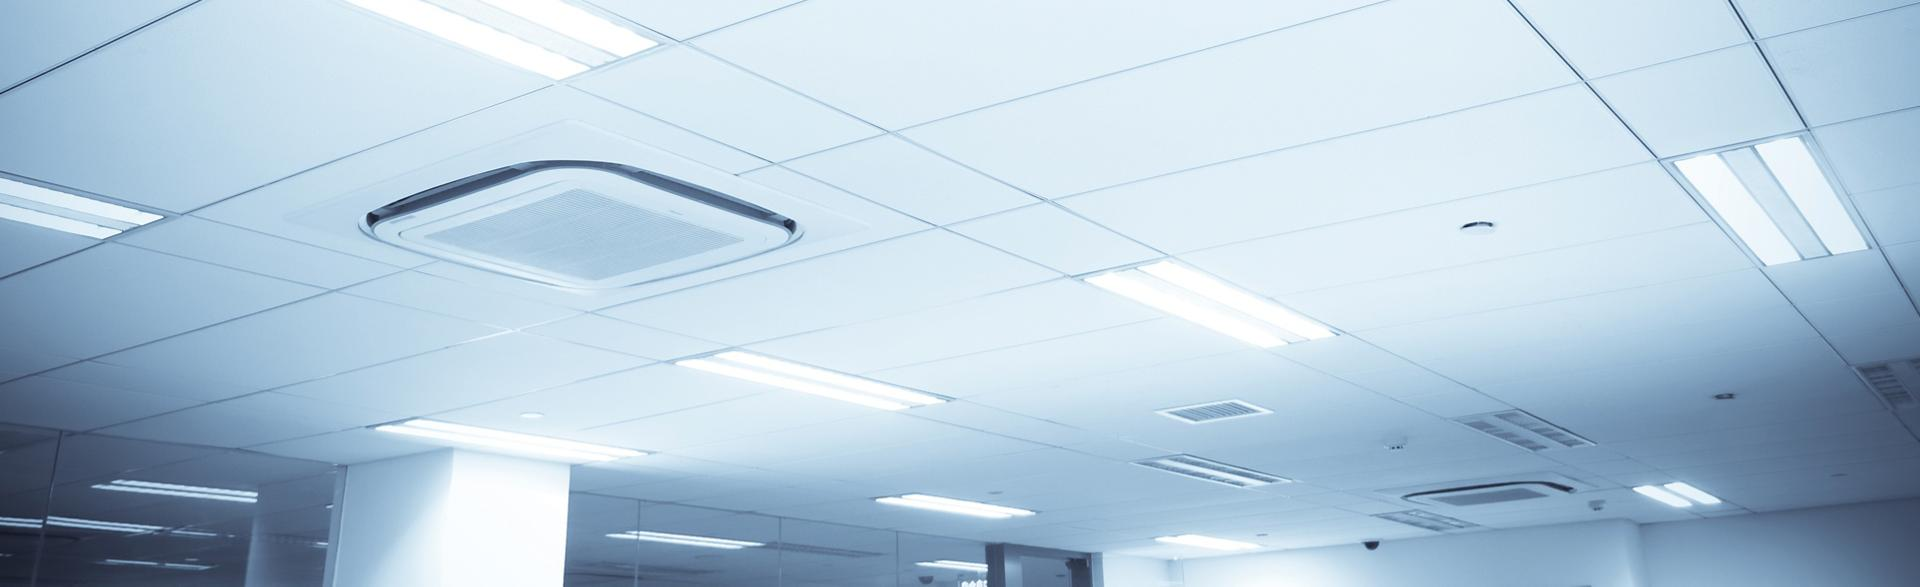 Inefficient, costly fluorescent bulbs on office ceiling